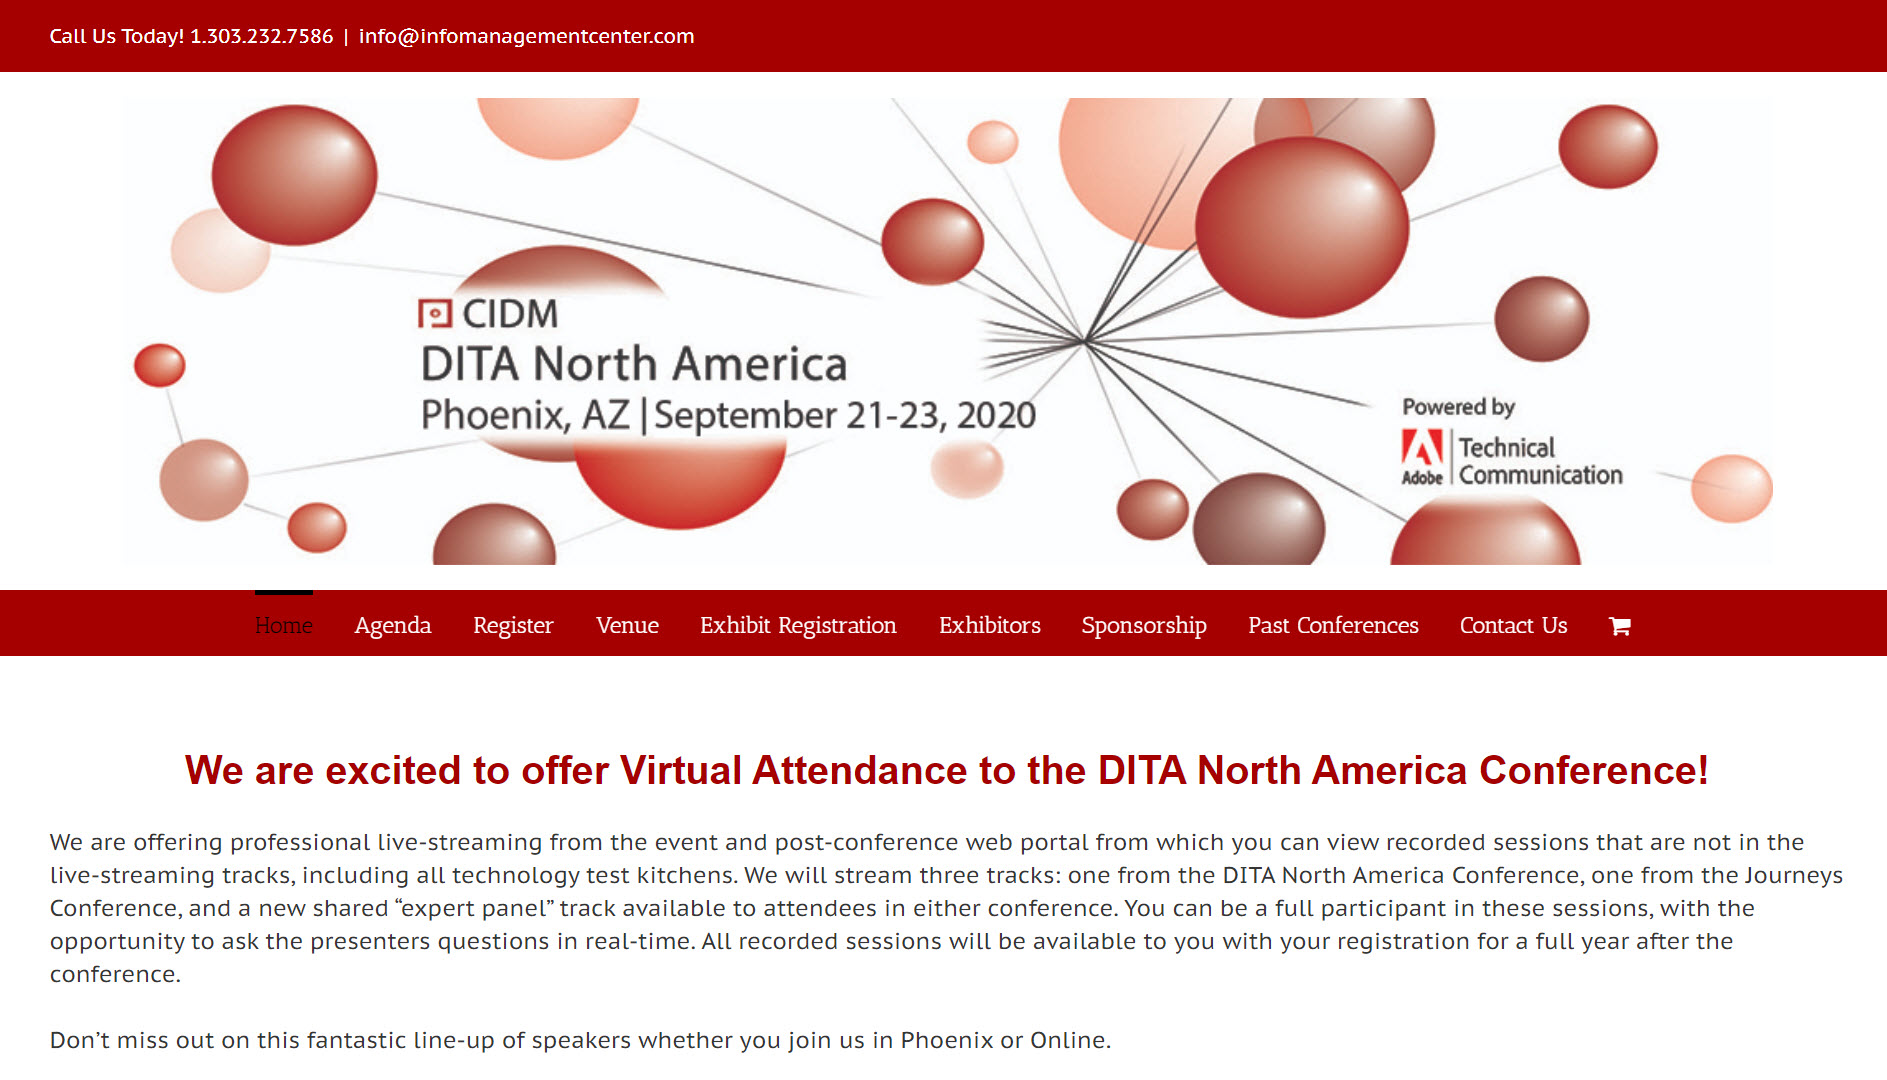 CIDM DITA North America 2020 (Center for Information-Development Management 22nd Annual DITA North America Conference)